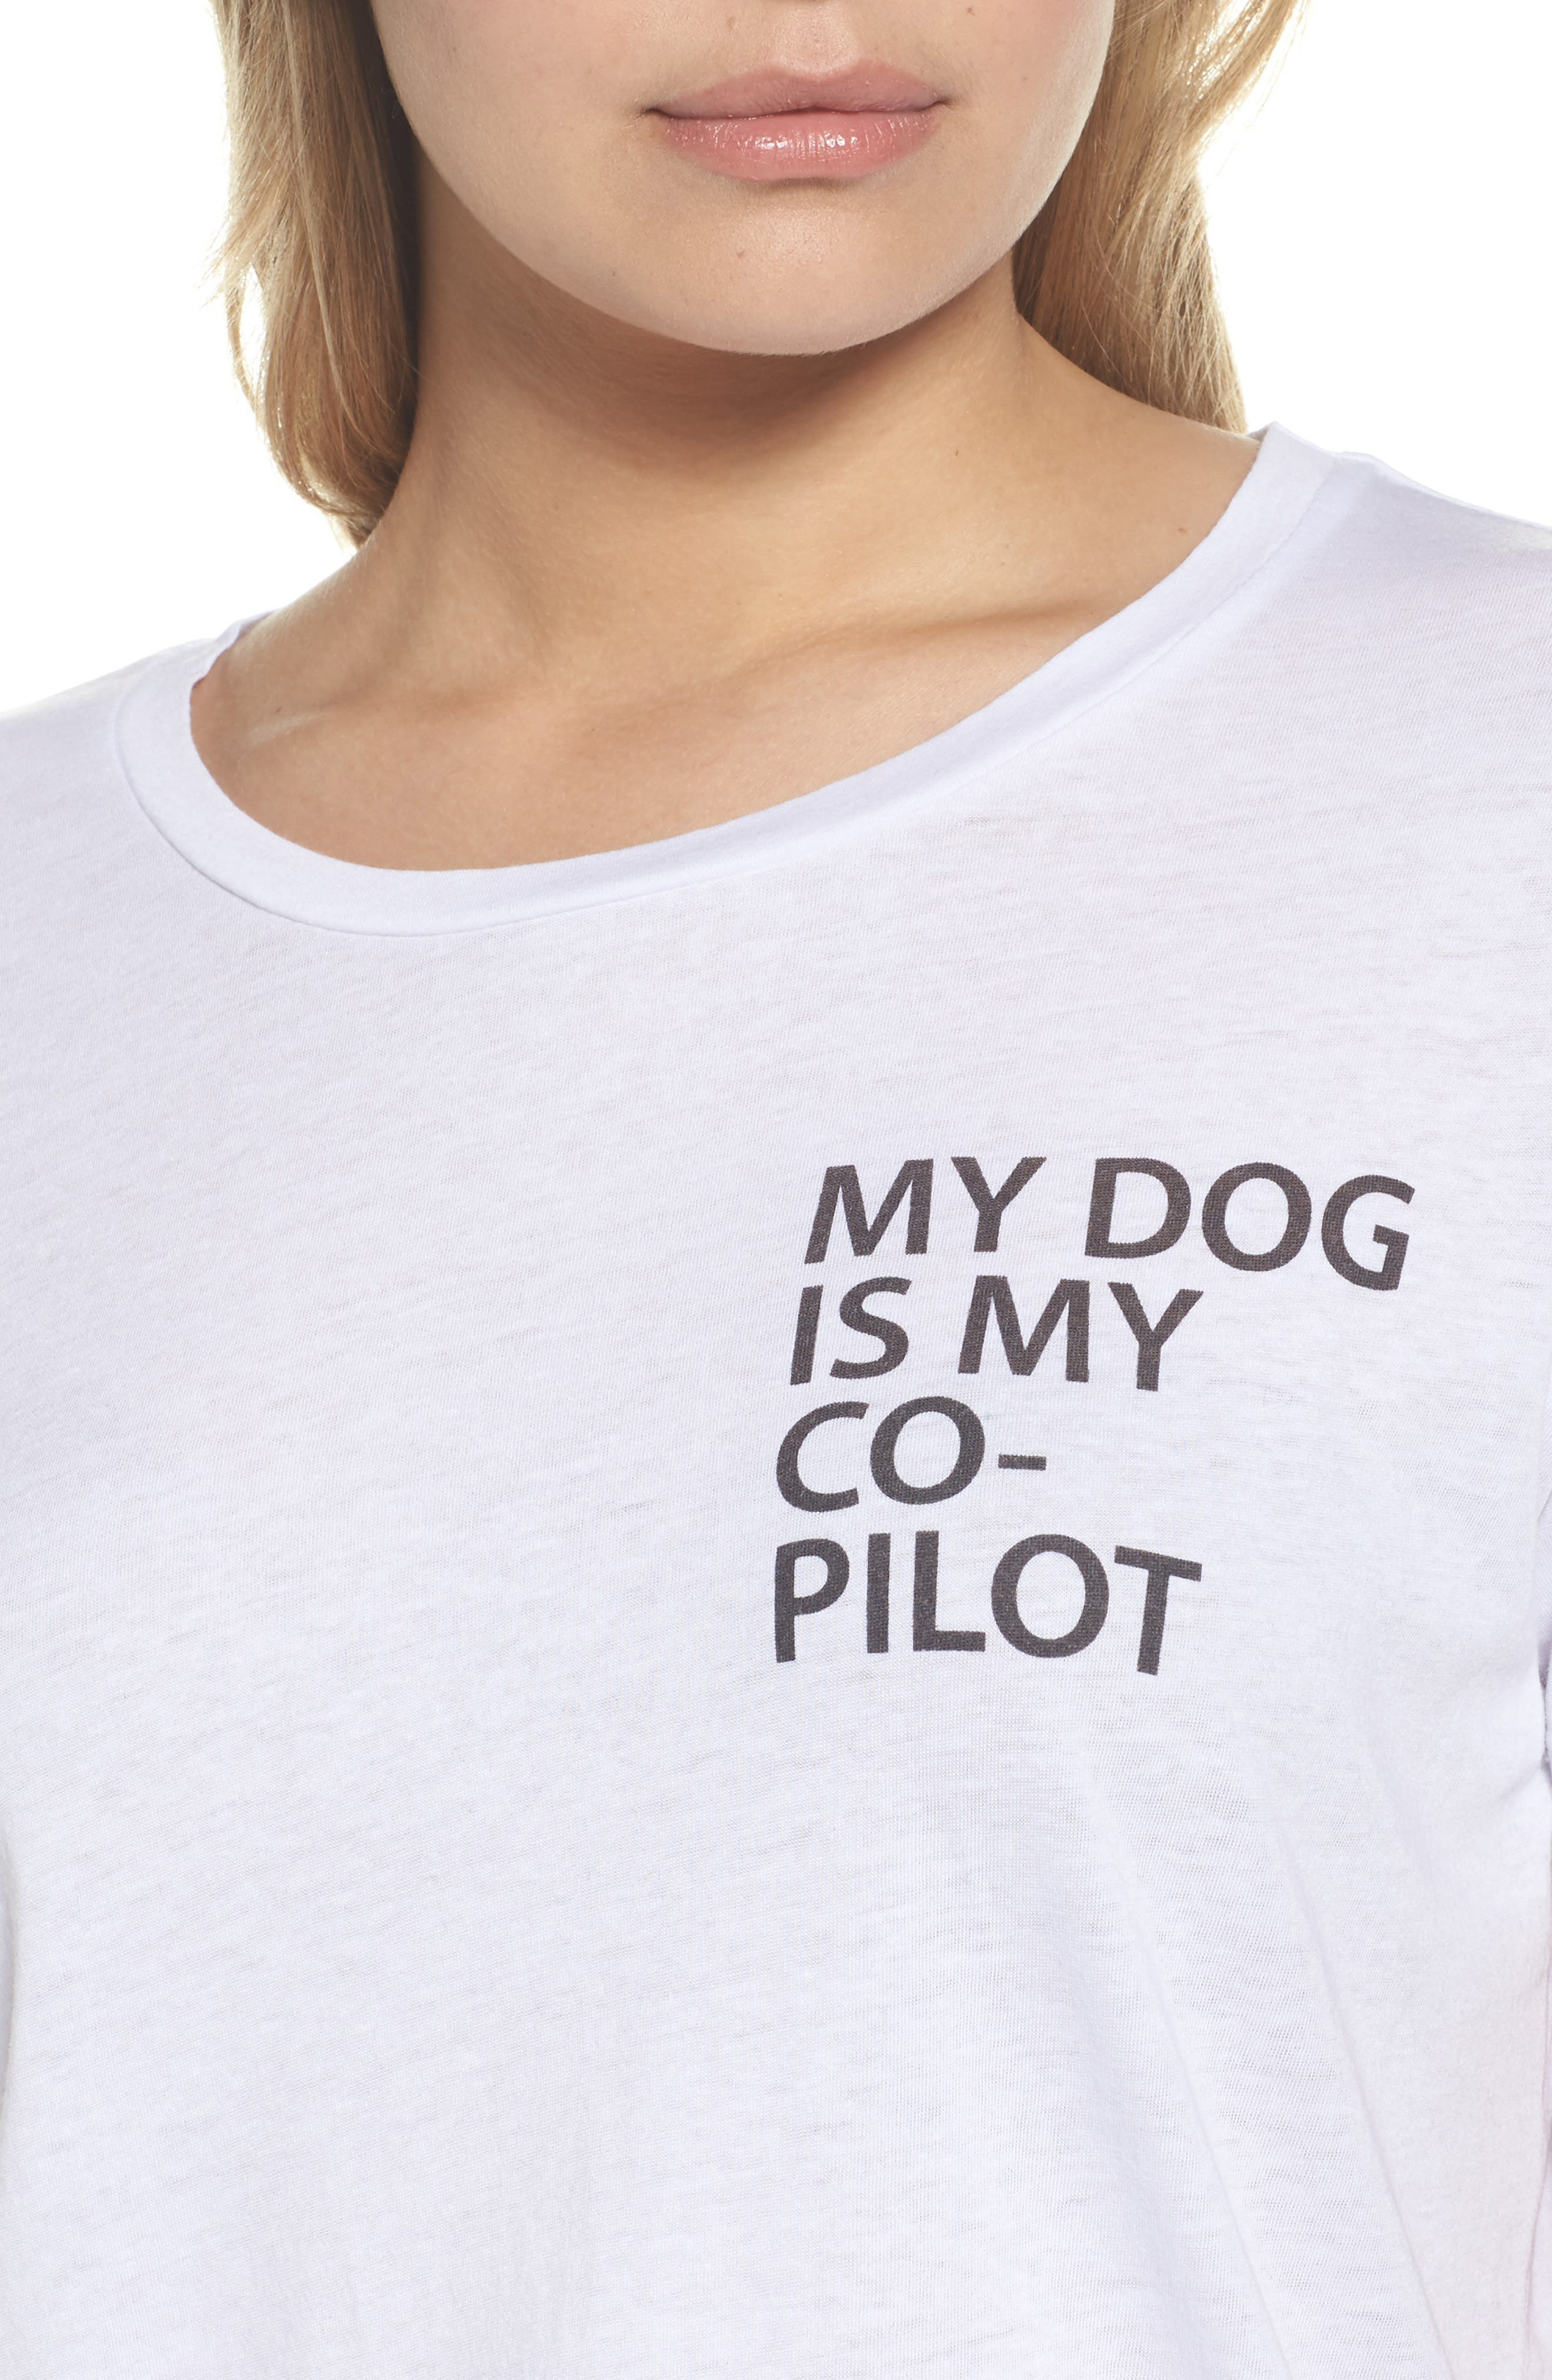 My Dog is My Co-Pilot Tee,                             Alternate thumbnail 4, color,                             100